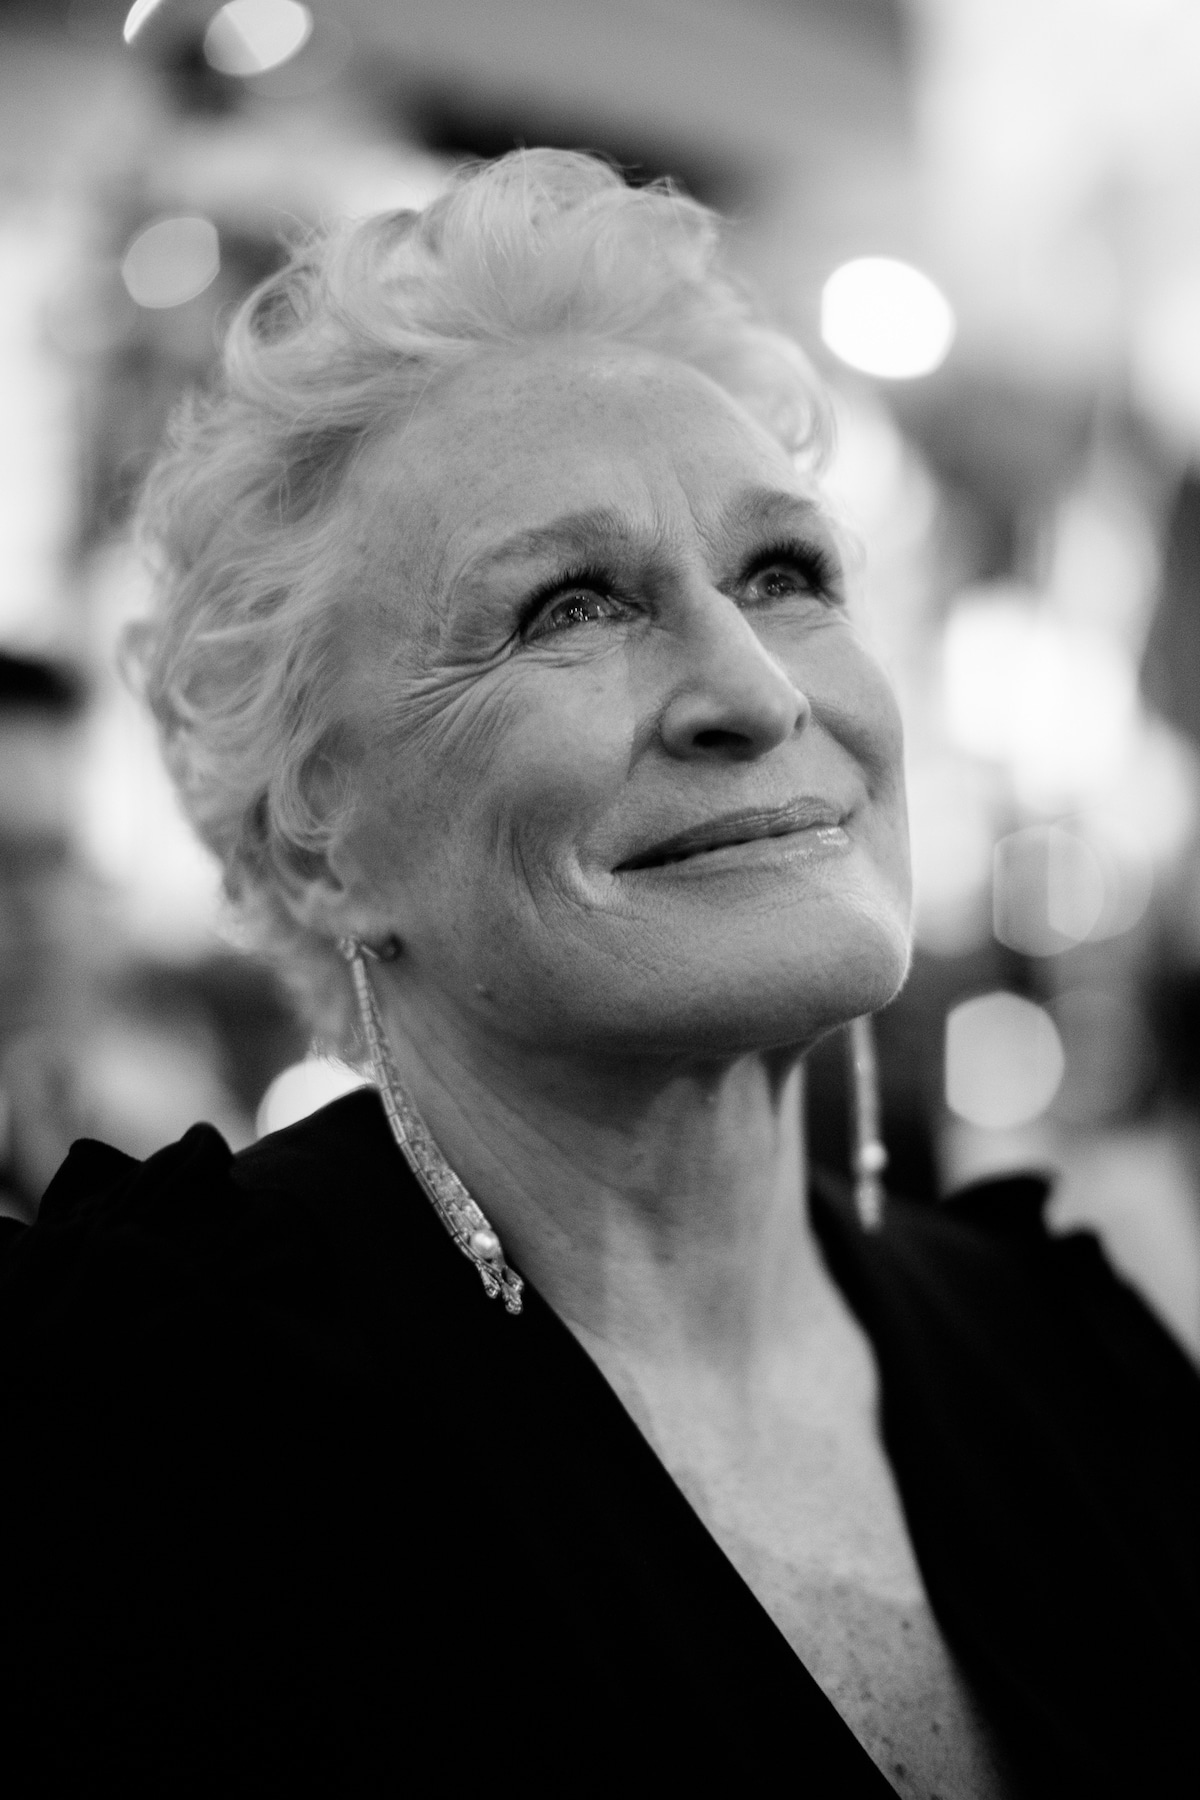 Glenn Close at the BAFTAs by Charlie Clift